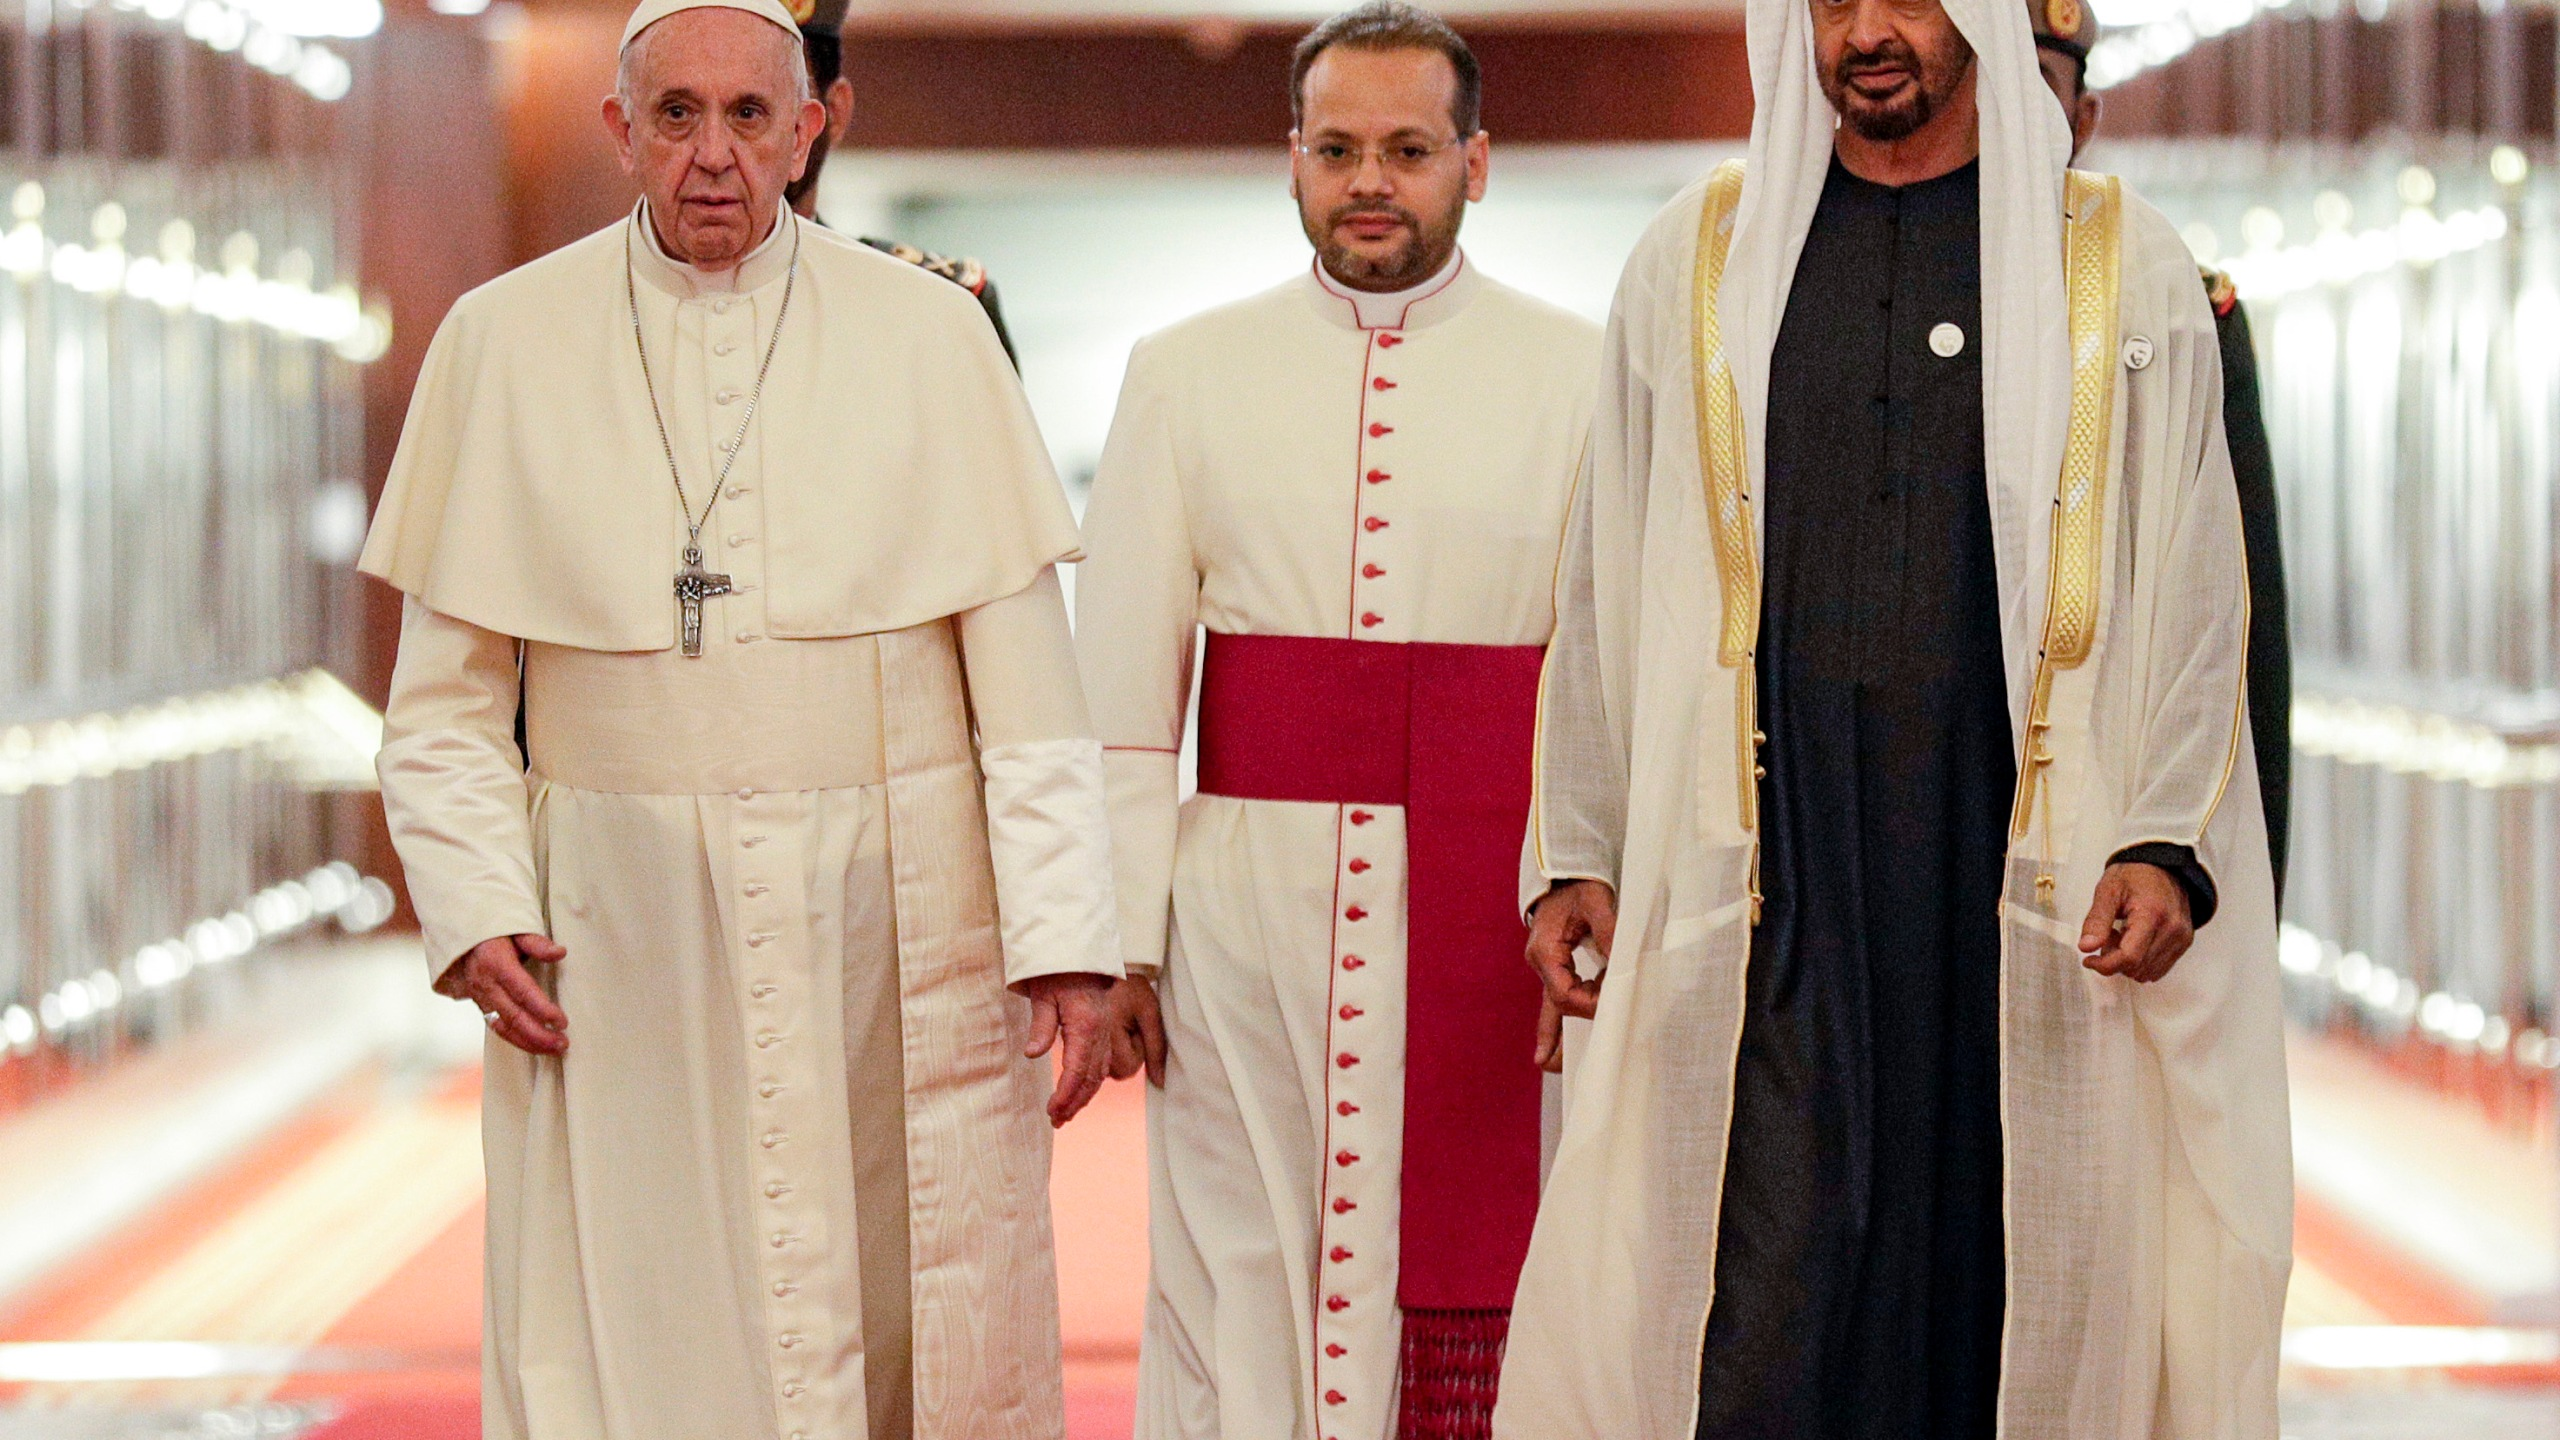 Pope Francis (C-L) is welcomed by Abu Dhabi's Crown Prince Sheikh Mohammed bin Zayed al-Nahyan (C-R) upon his arrival at Abu Dhabi International Airport in the UAE capital on February 3, 2019. (Credit: Andrew Medichini / POOL / AFP/Getty Images)